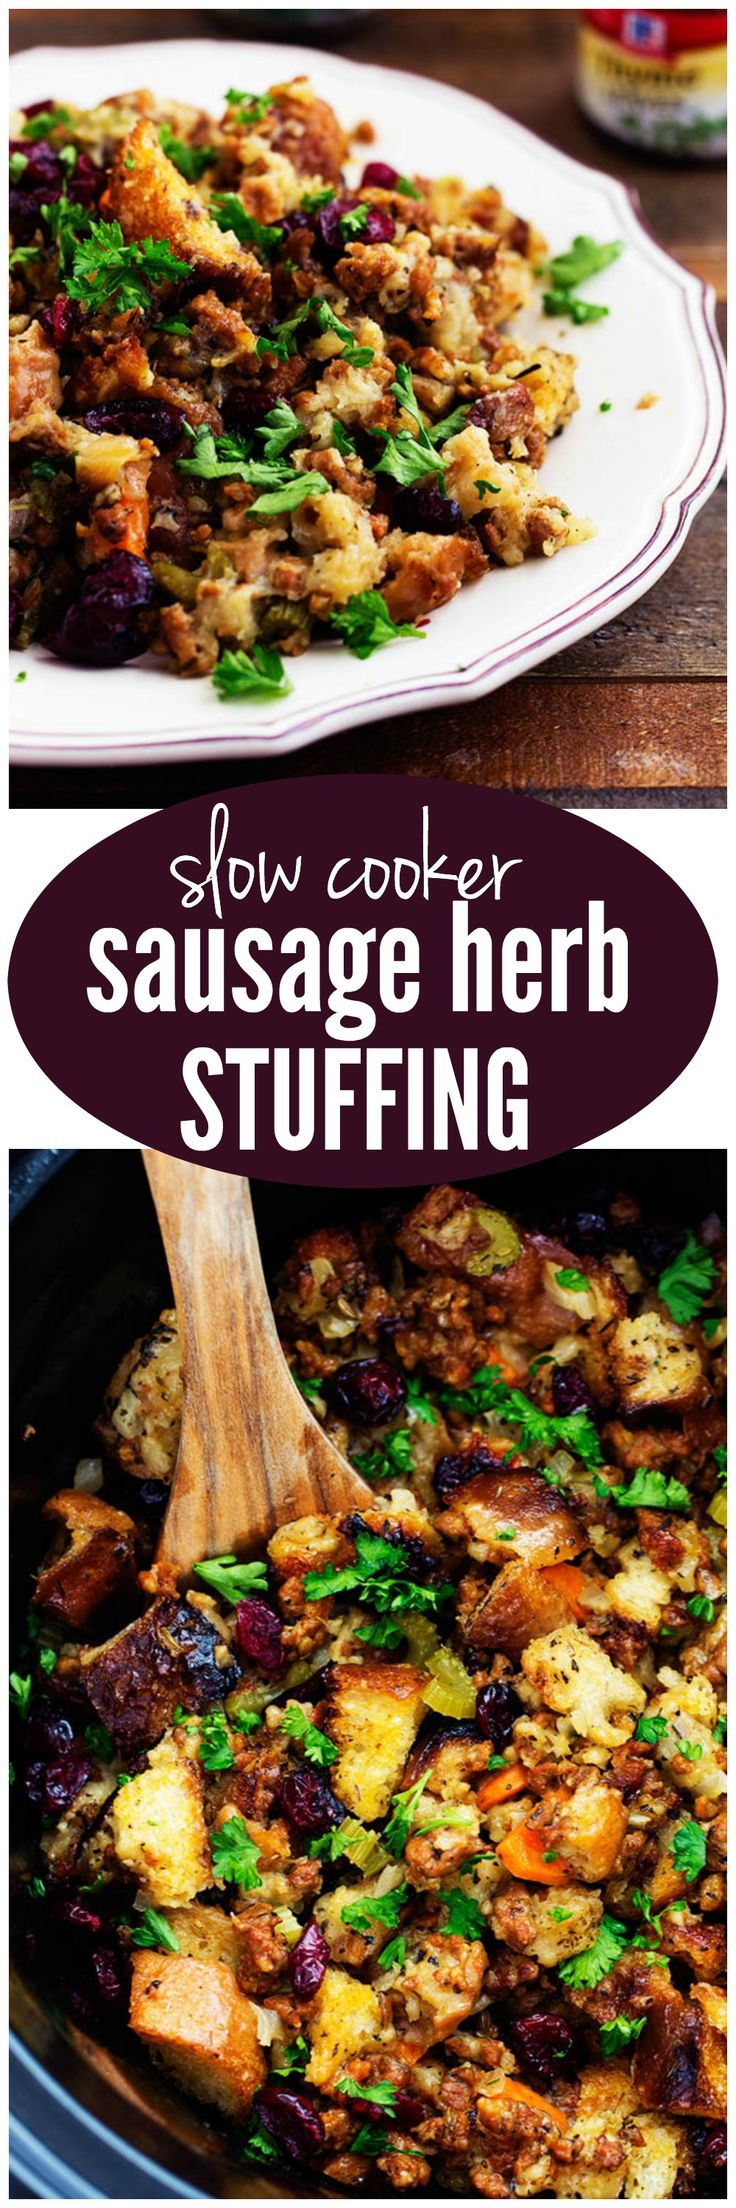 This classic sausage stuffing is flavored with basil, thyme, and sage adding such amazing flavor. Made right in your slow cooker it frees up your oven and makes it easy to transport. It slow cooks to perfection adding crispy edges and will be the best stuffing that you will ever make!